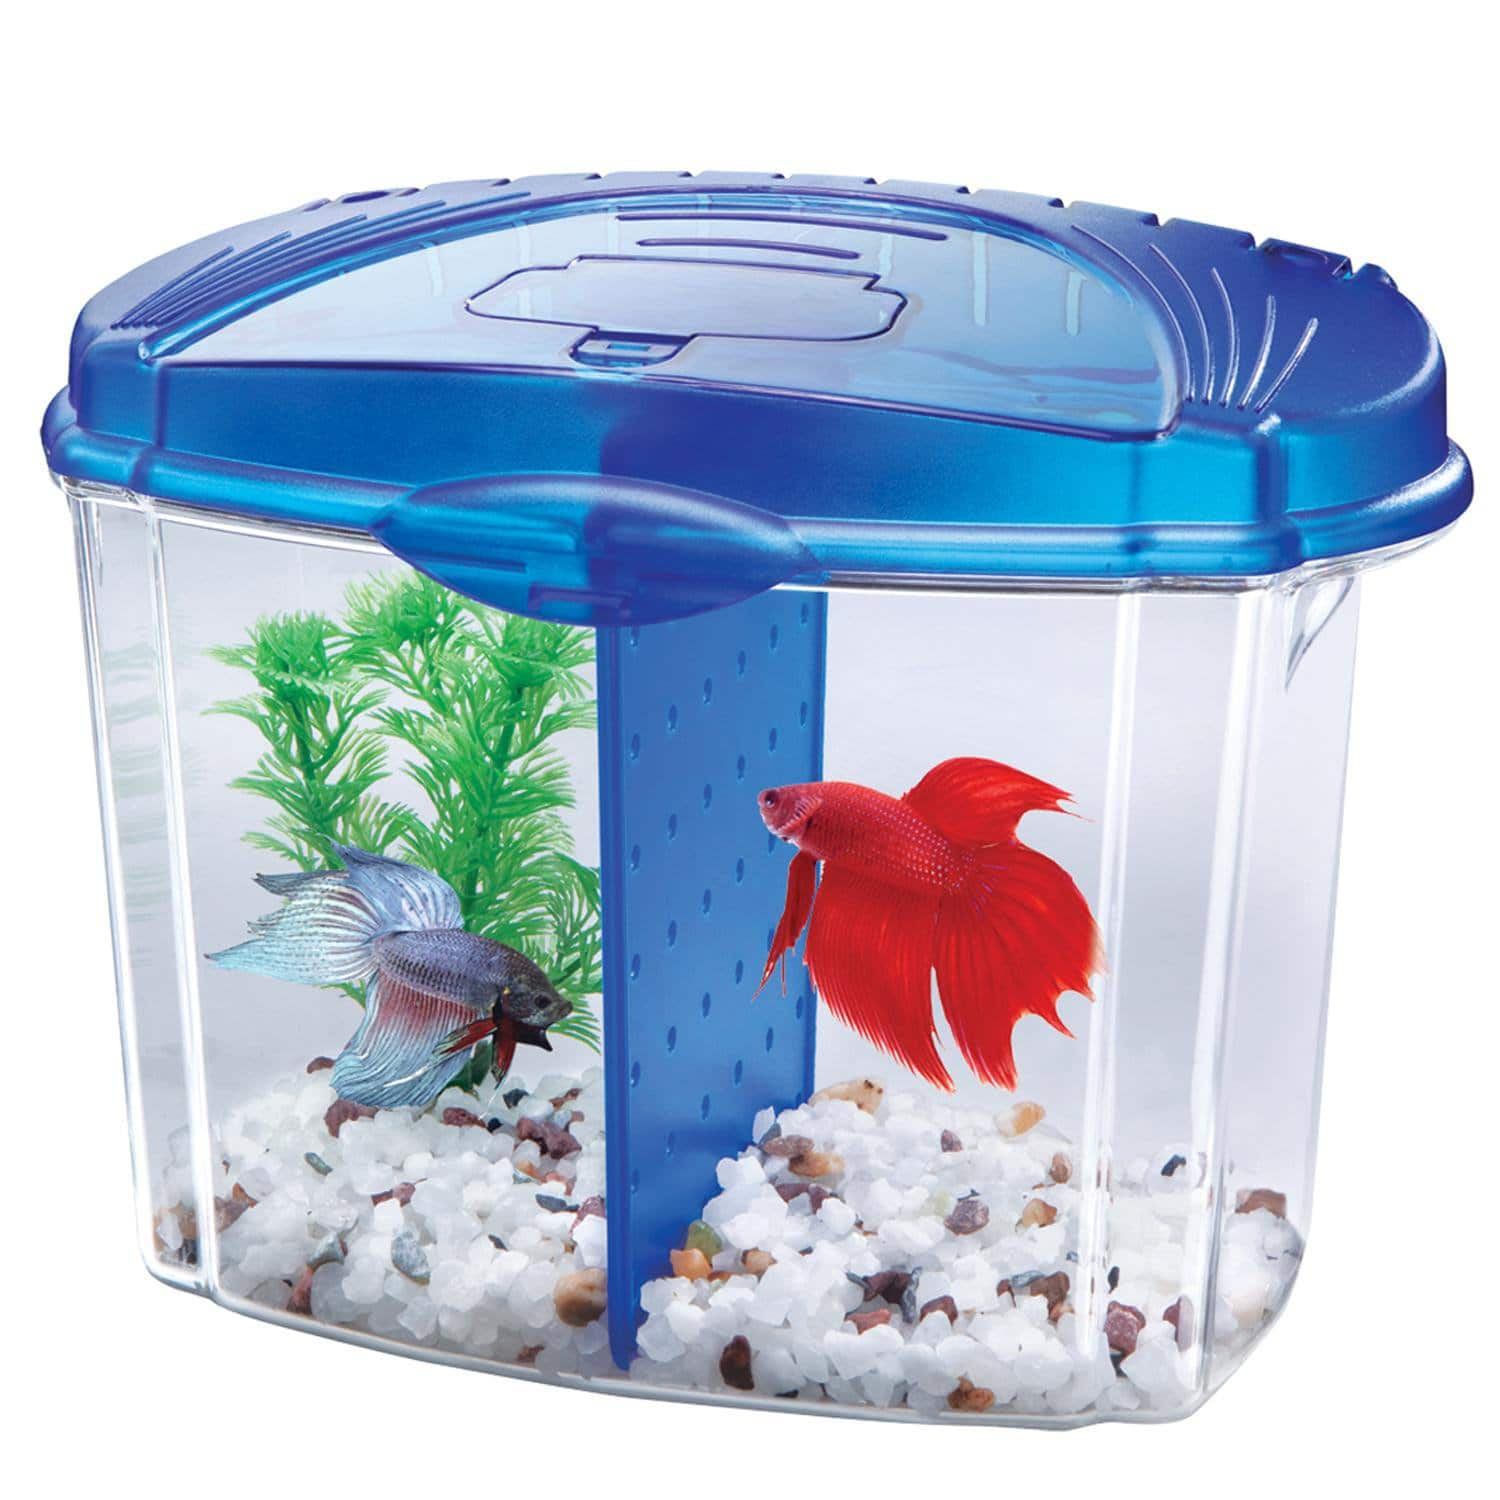 petco 39 s dollar a gallon aquarium fish tank sale starts